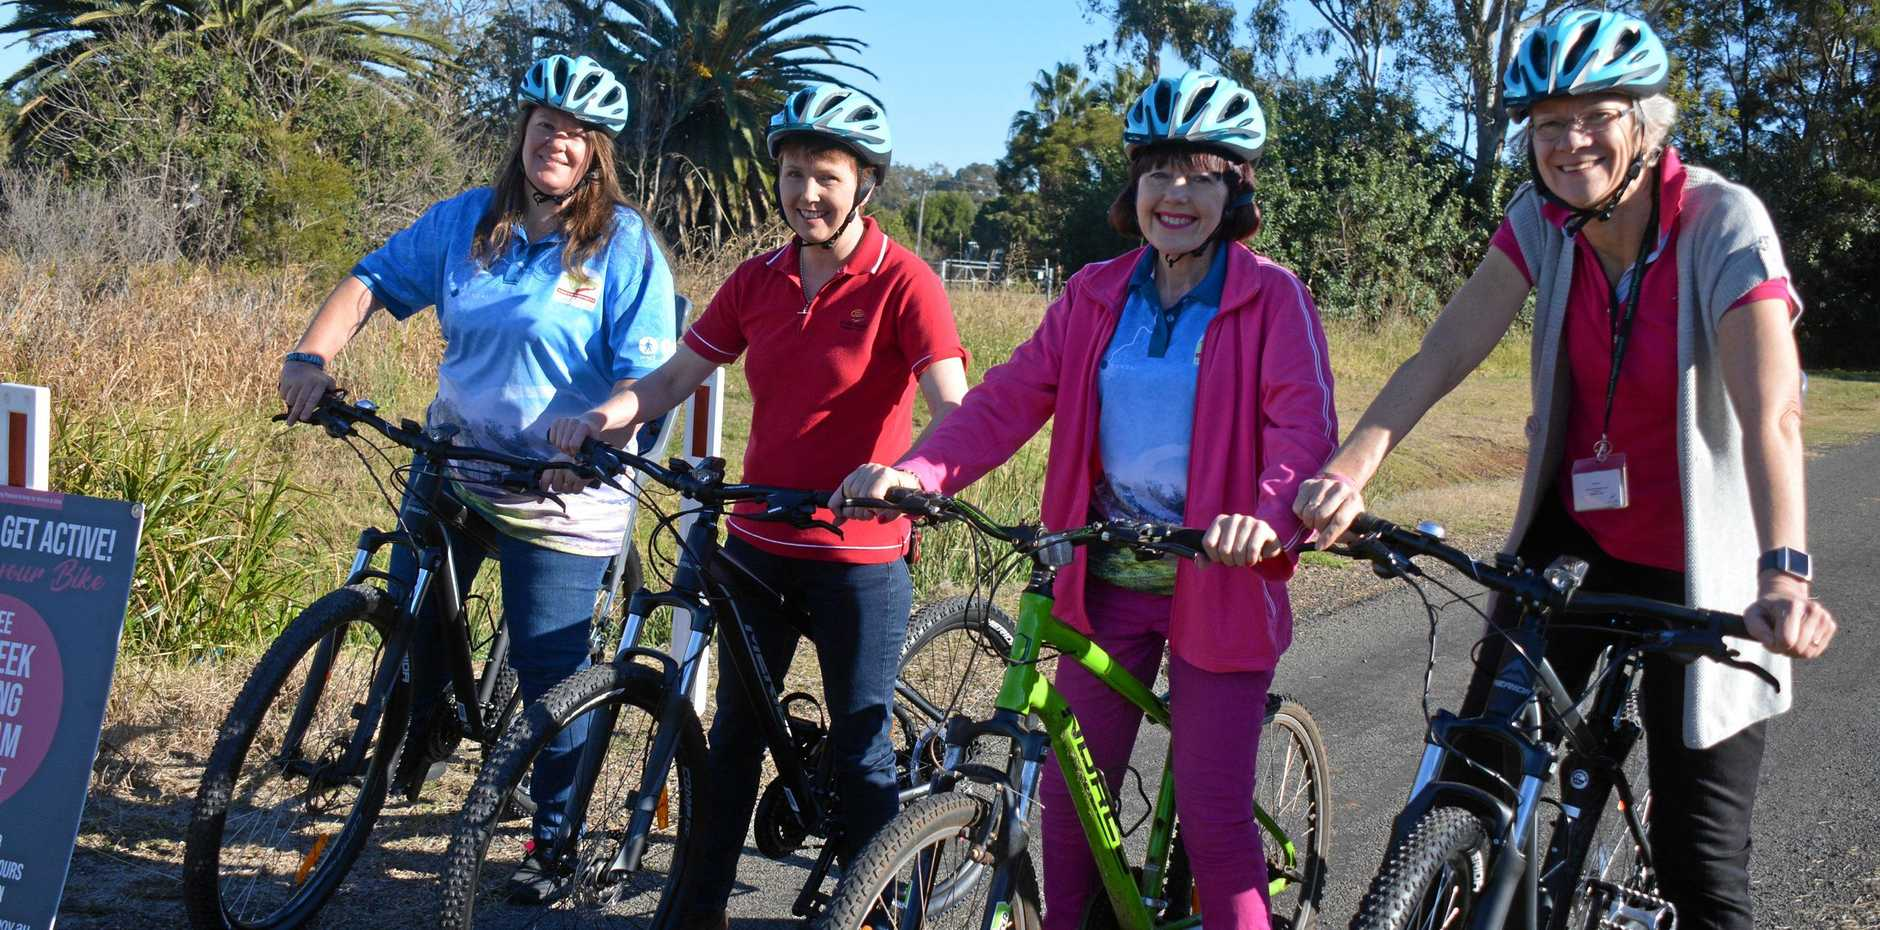 RIDING: South Burnett councillors Danita Potter, Roz Frohloff, Kathy Duff and Ros Heit get on their bikes on the South Burnett Rail Trail in Kingaroy.